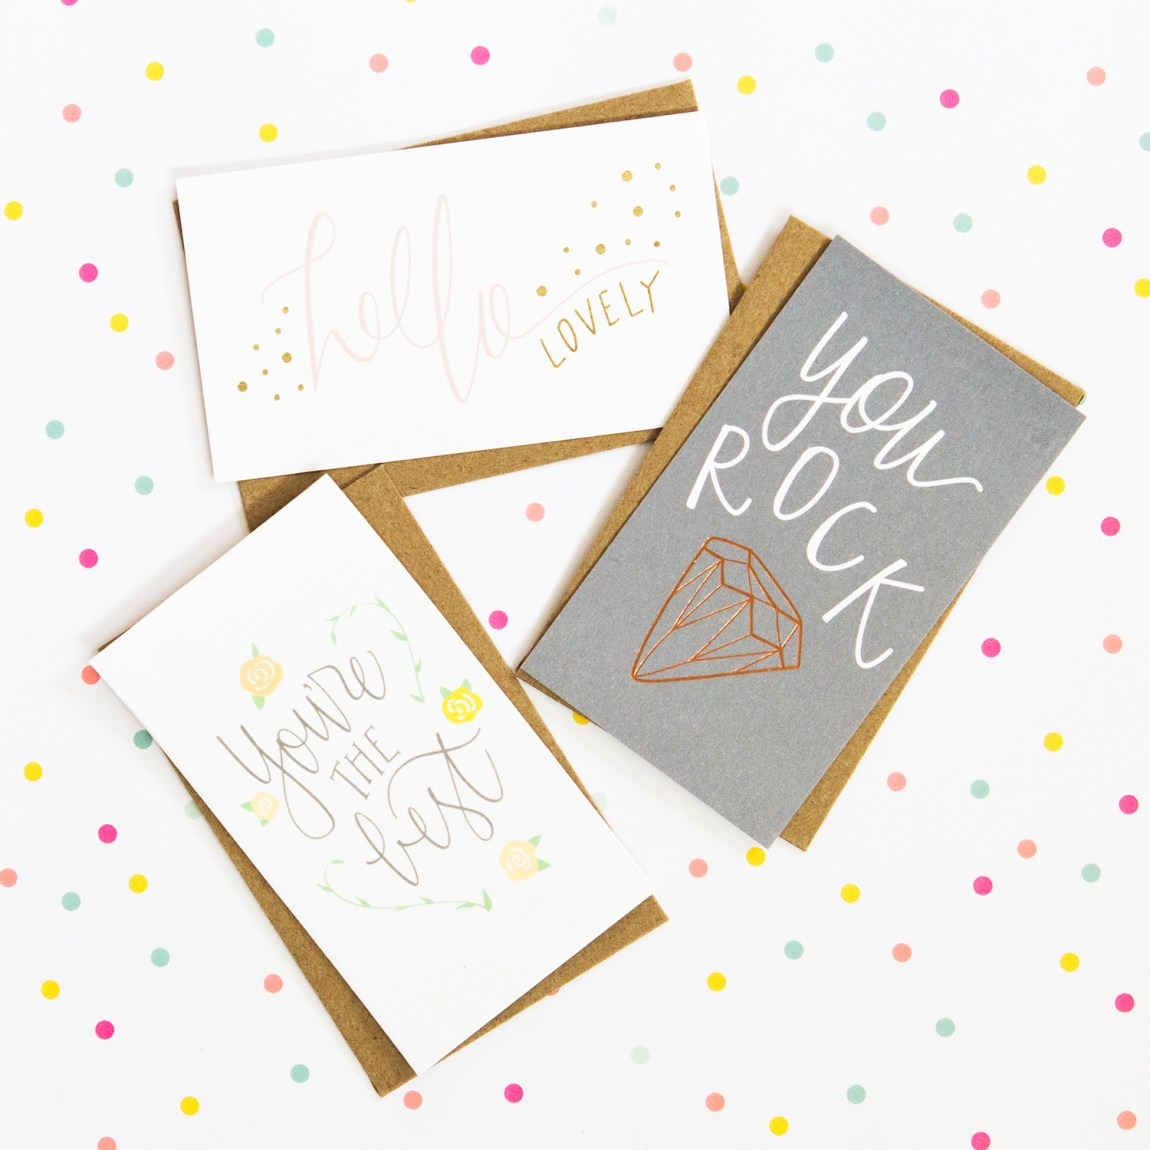 Mini notecards by Paper Sushi